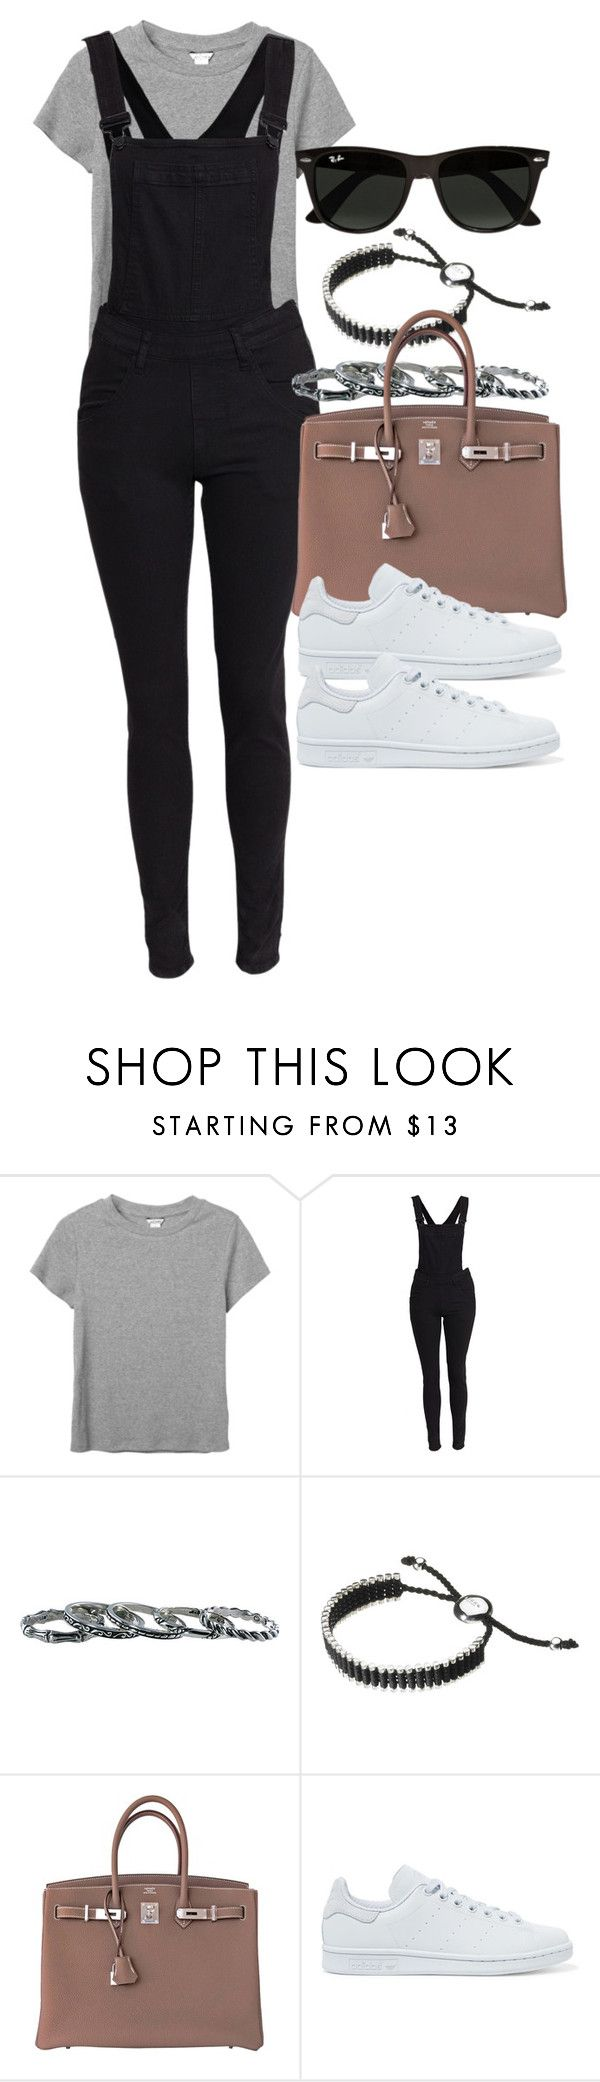 """""""Style #11119"""" by vany-alvarado ❤ liked on Polyvore featuring Monki, Cheap Monday, Southwest Moon, Links of London, Hermès, adidas Originals and Ray-Ban"""